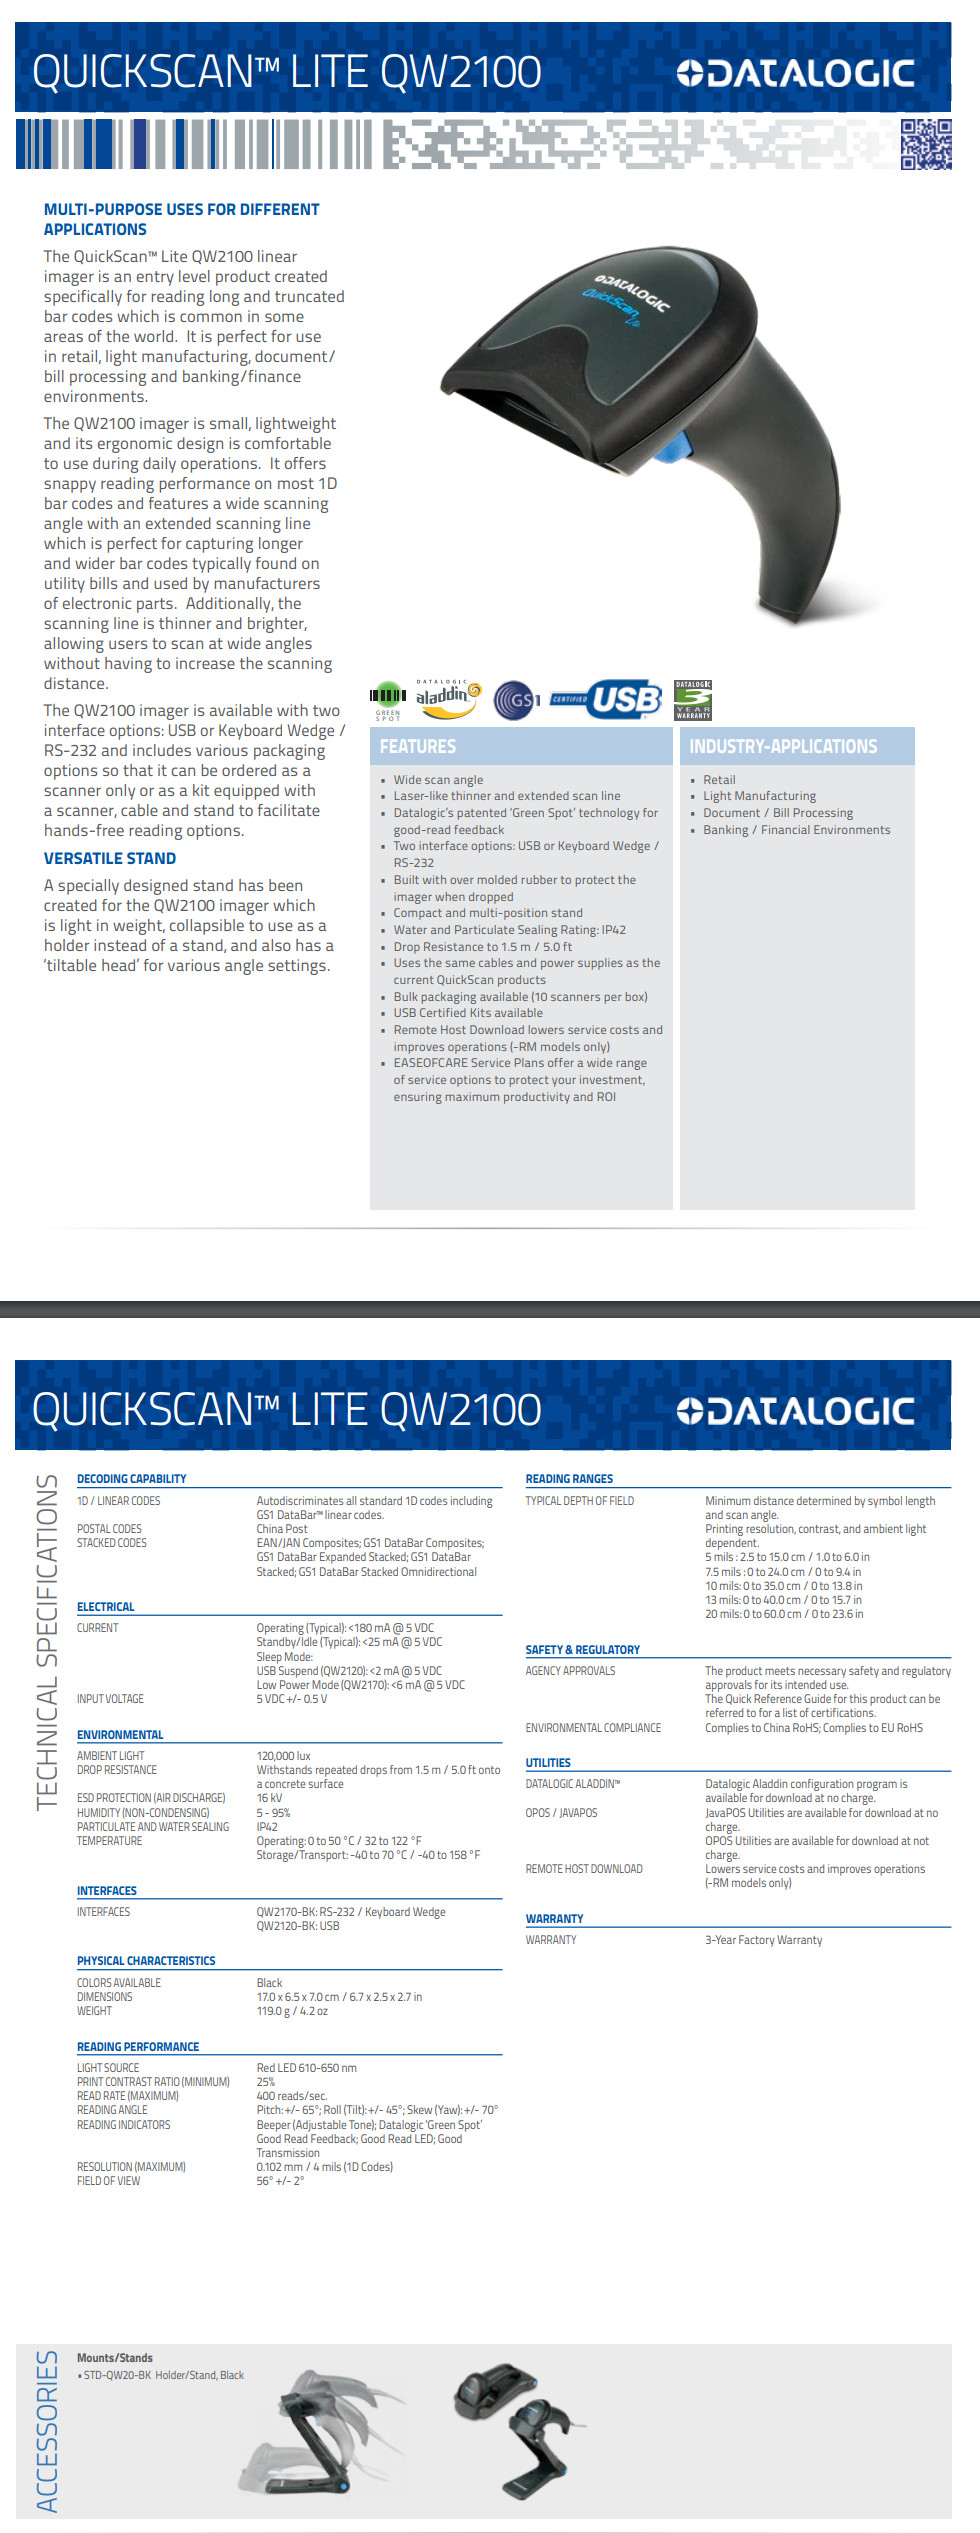 datalogic qw2100 driver download - datalogic qw2100 driver download